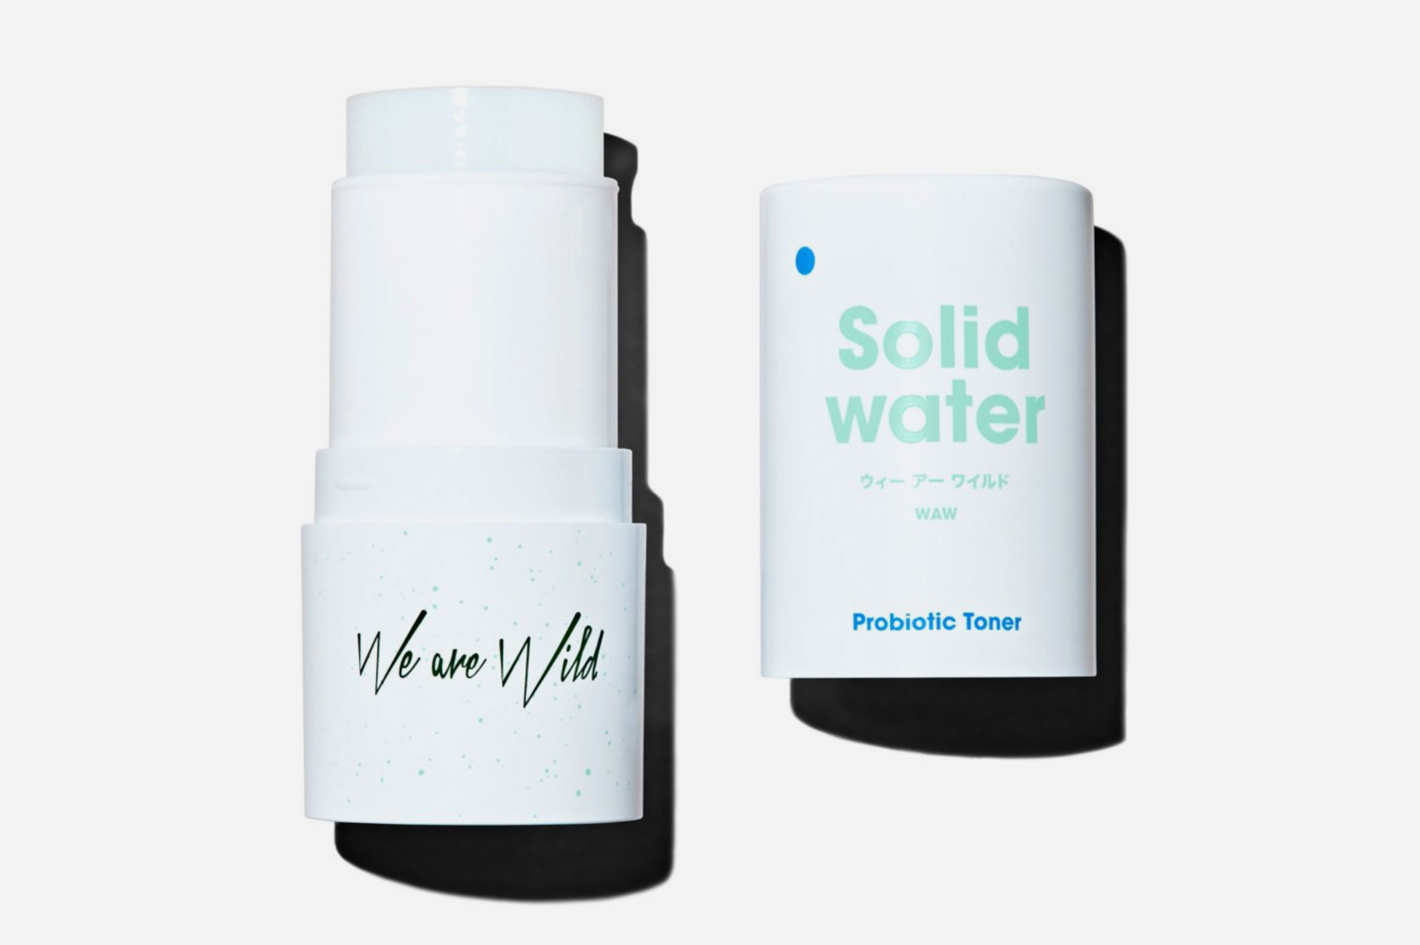 We Are Wild Solid Water Probiotic Toner